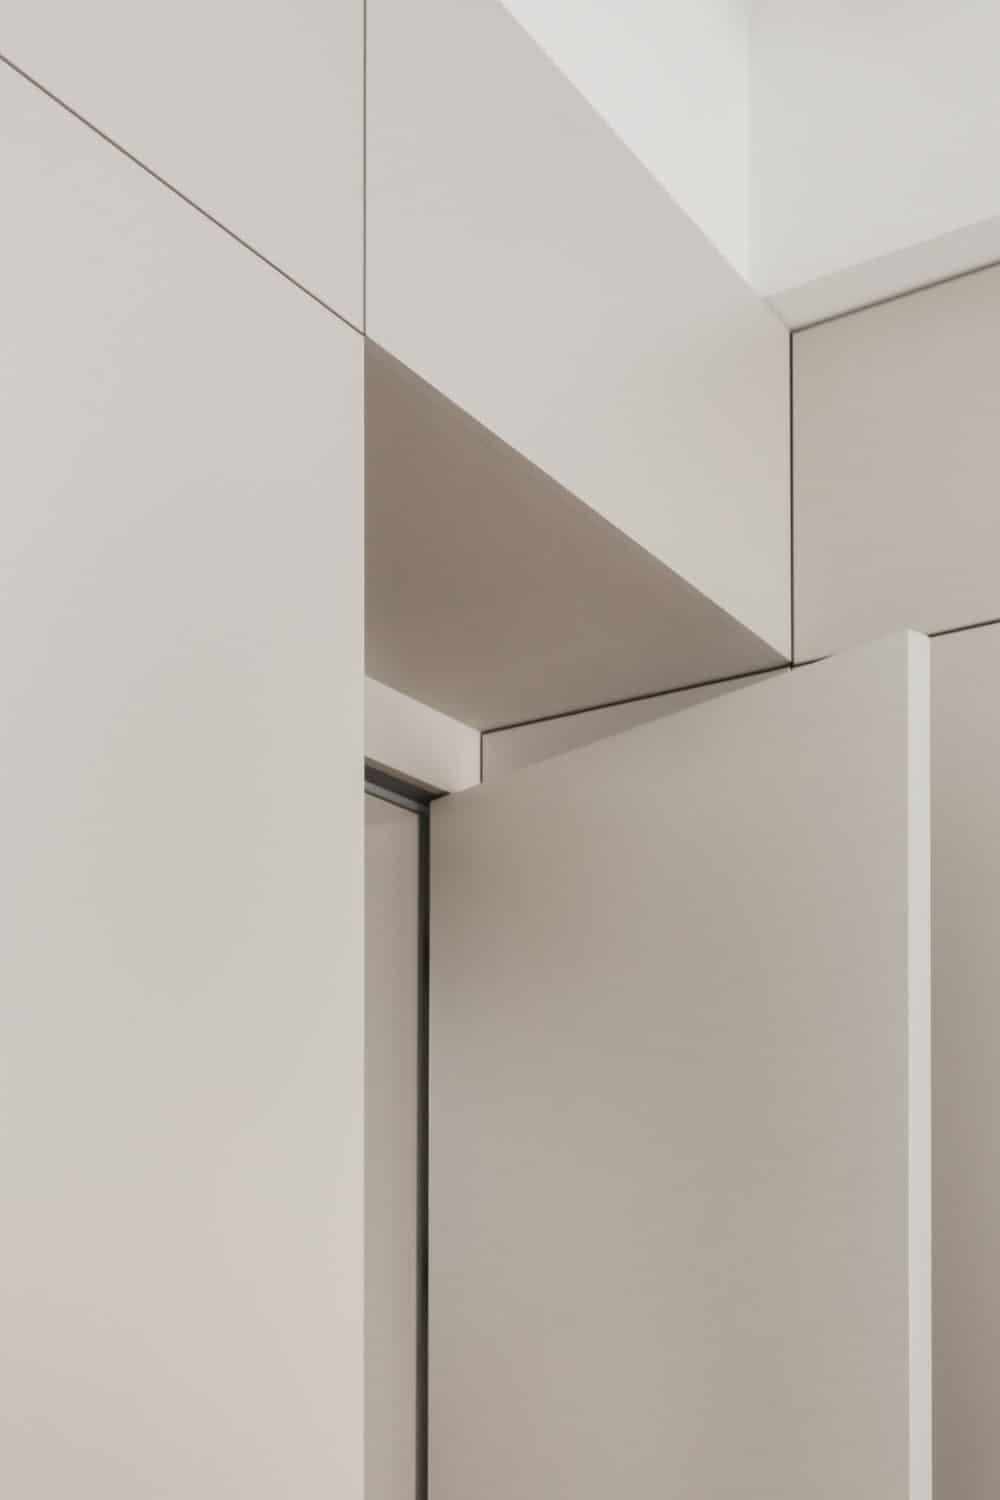 This is a close look at the white door, walls and ceiling of the conference room that blend perfectly.